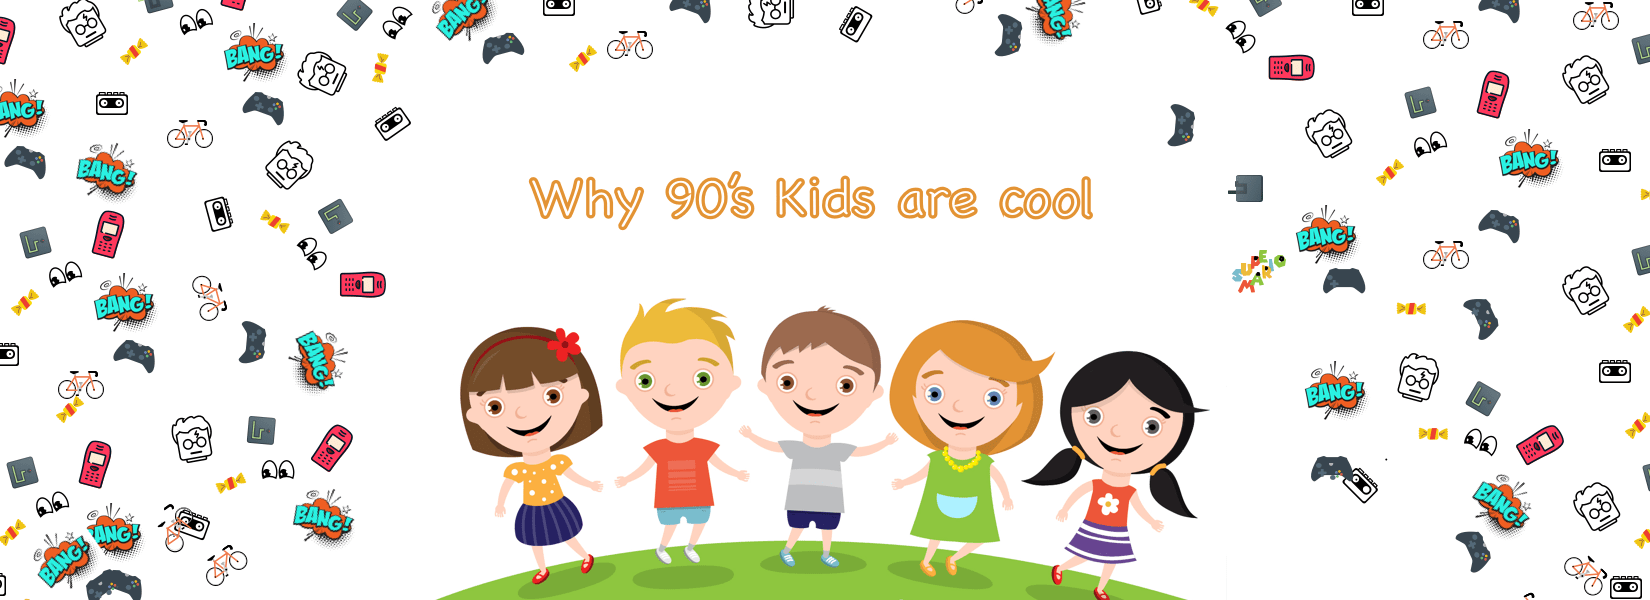 Why 90's kids are cool